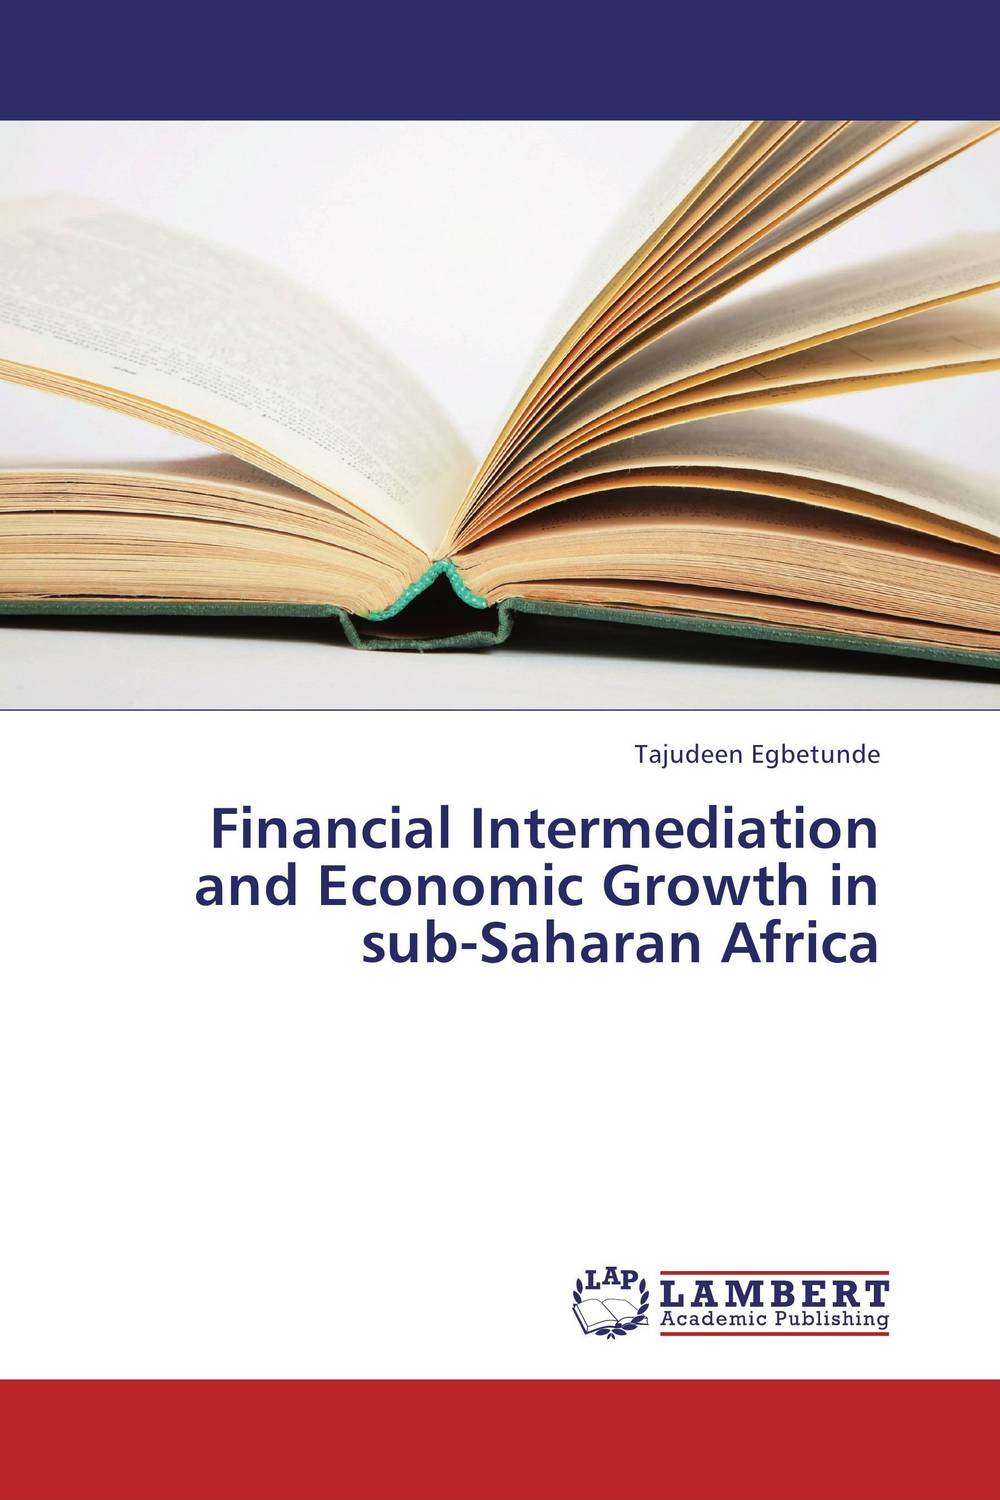 Financial Intermediation and Economic Growth in sub-Saharan Africa chinedu chinedu the debt growth link in sub saharan africa